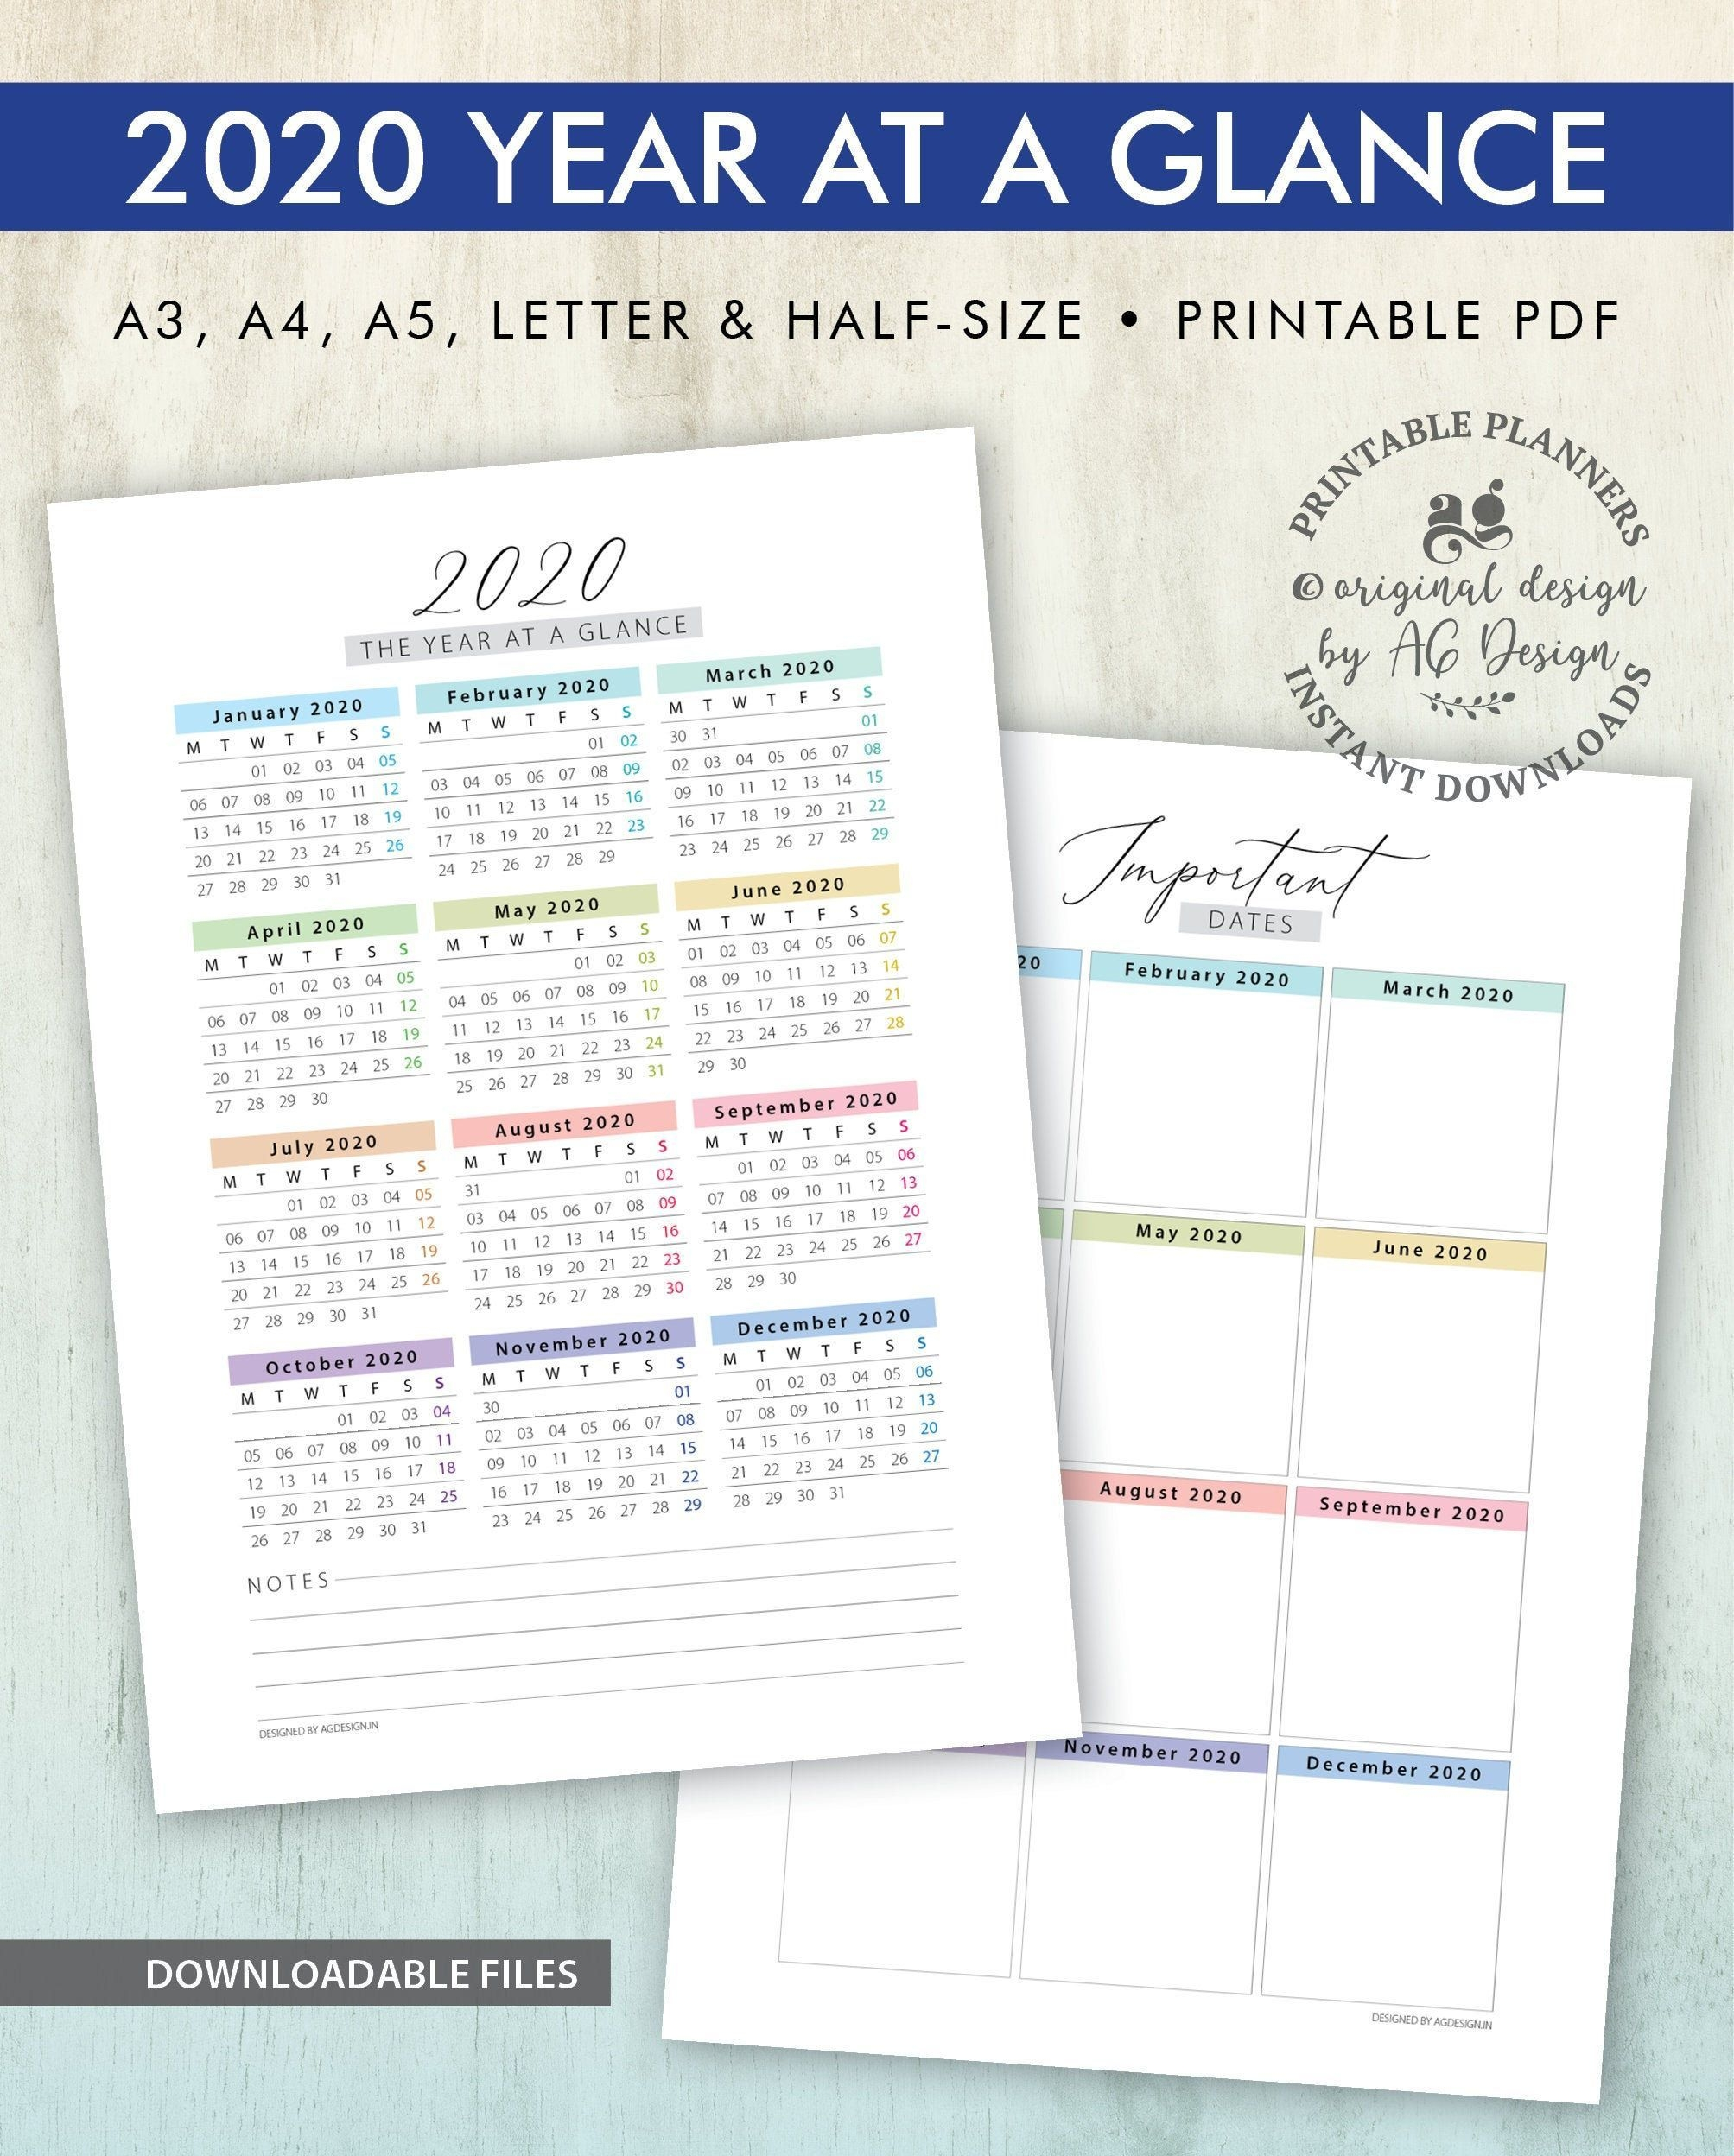 2020 calendar printables, year at a glance and dates, yearly